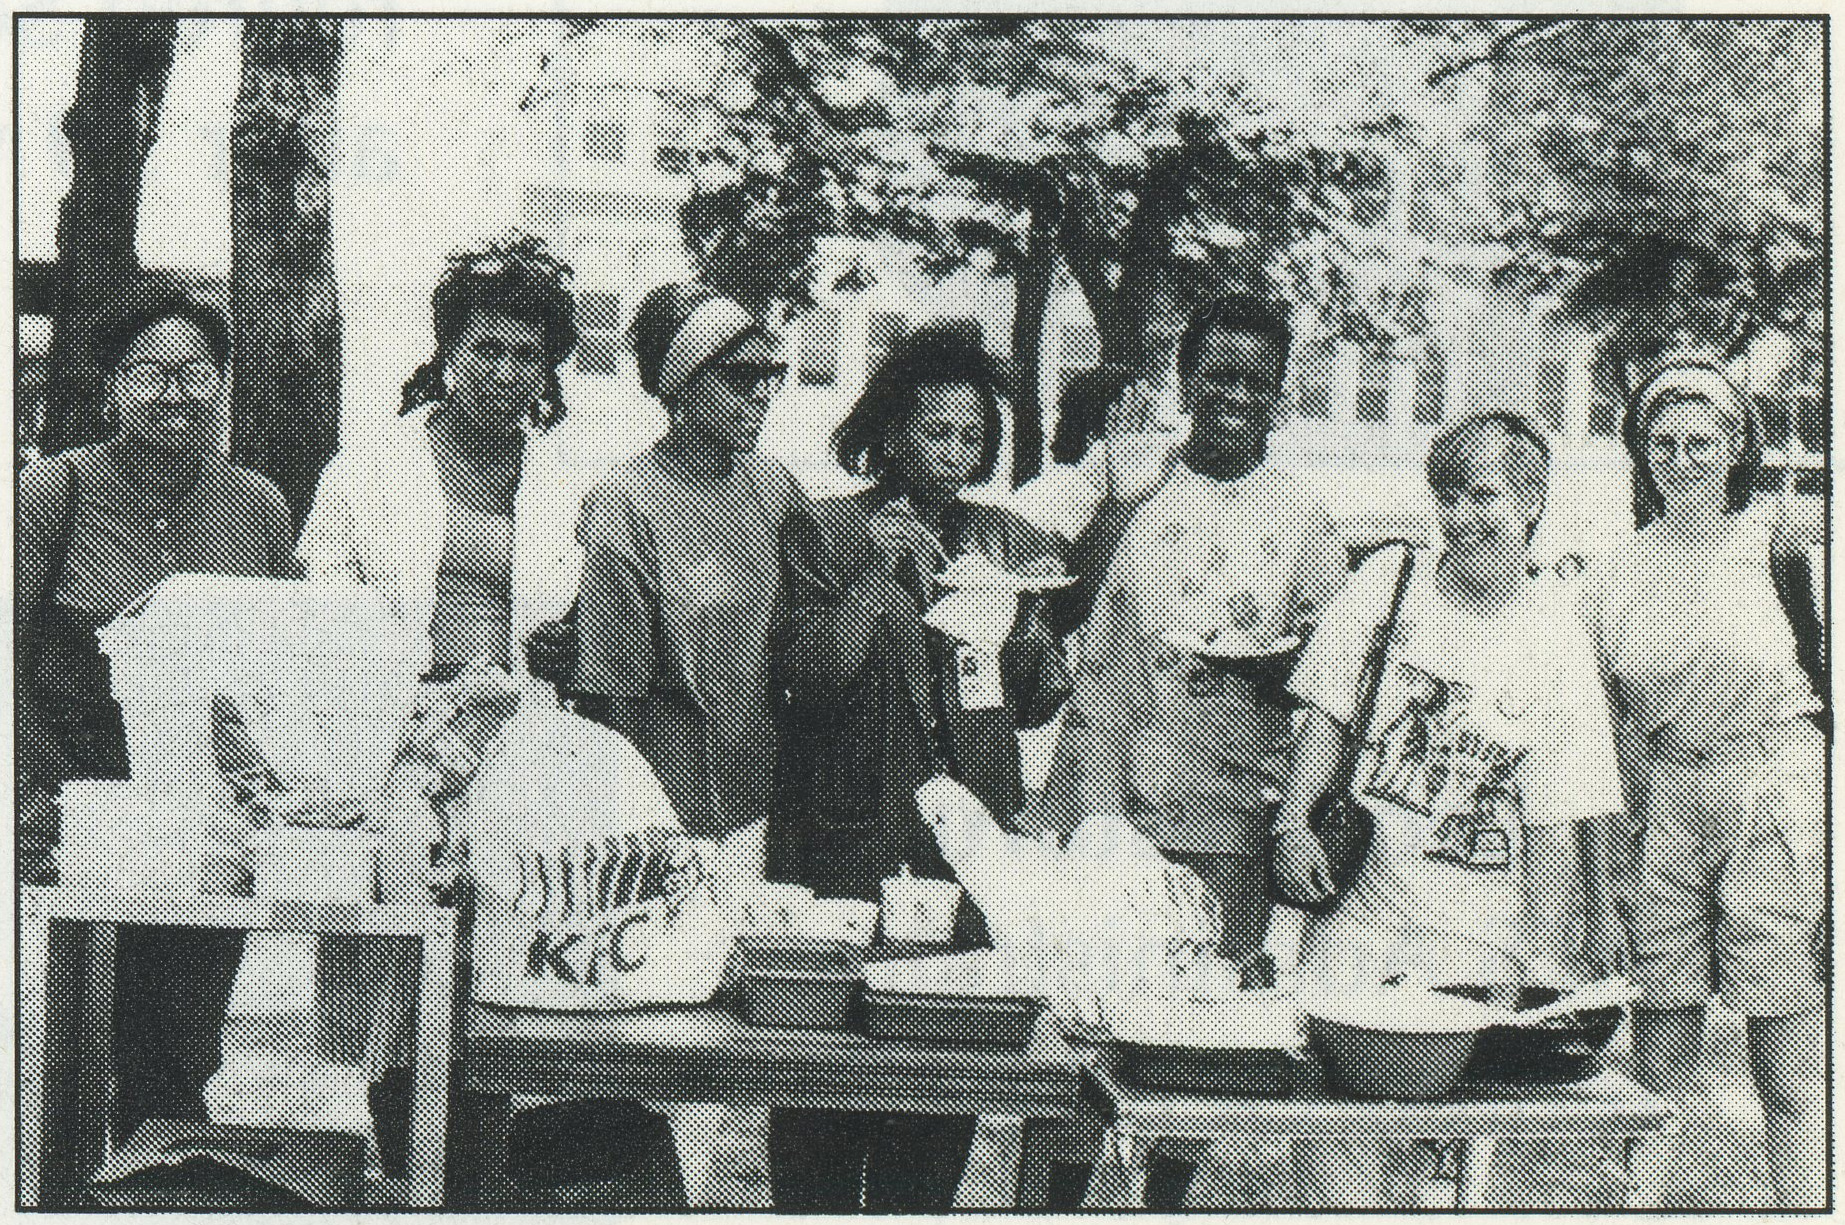 Women and children with AIDS program annual picnic, 1991